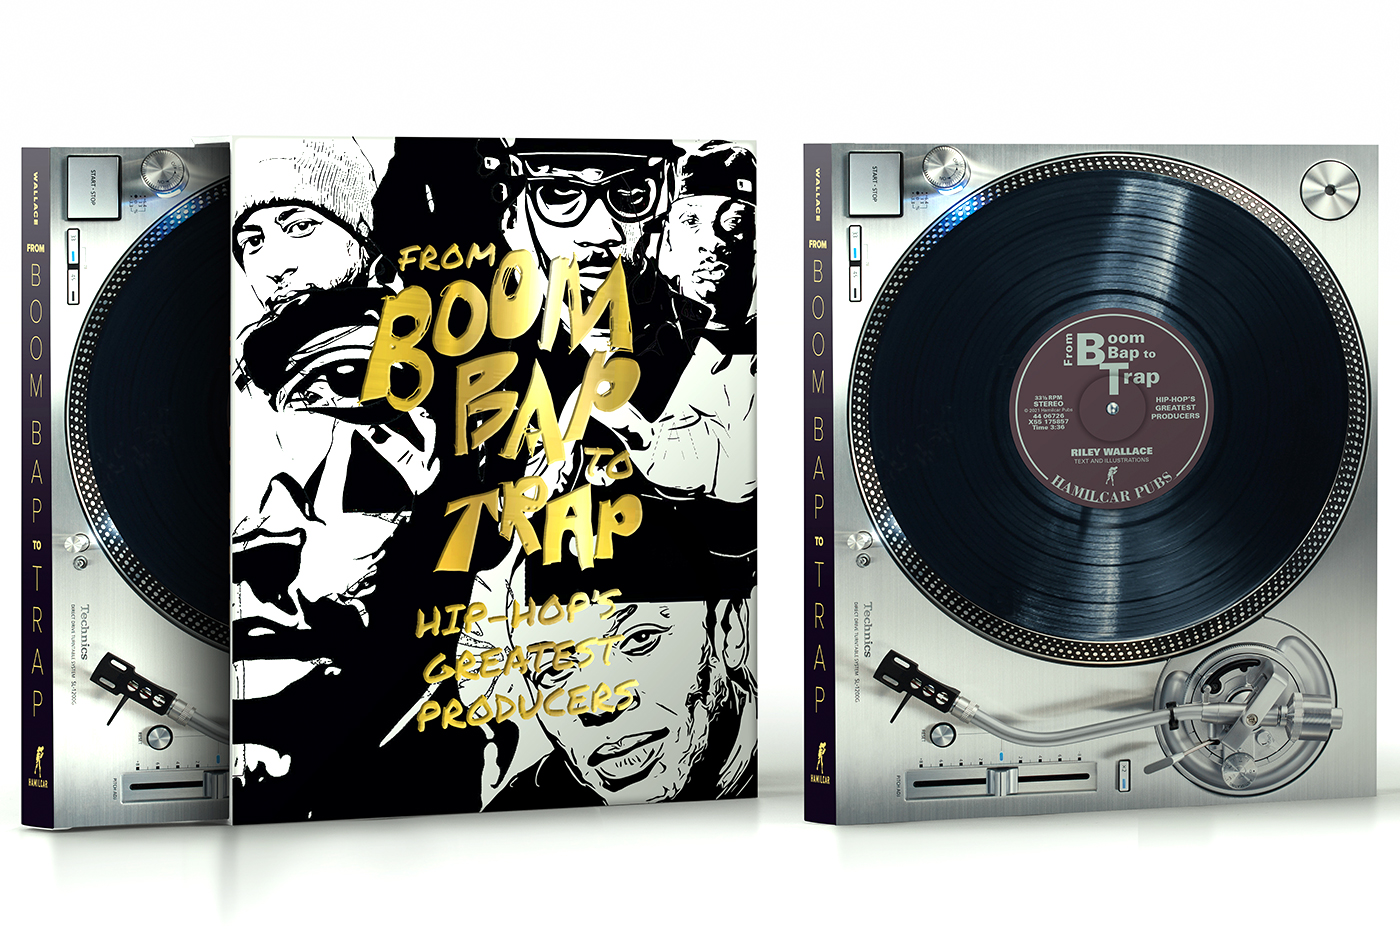 From boom bap to trap book